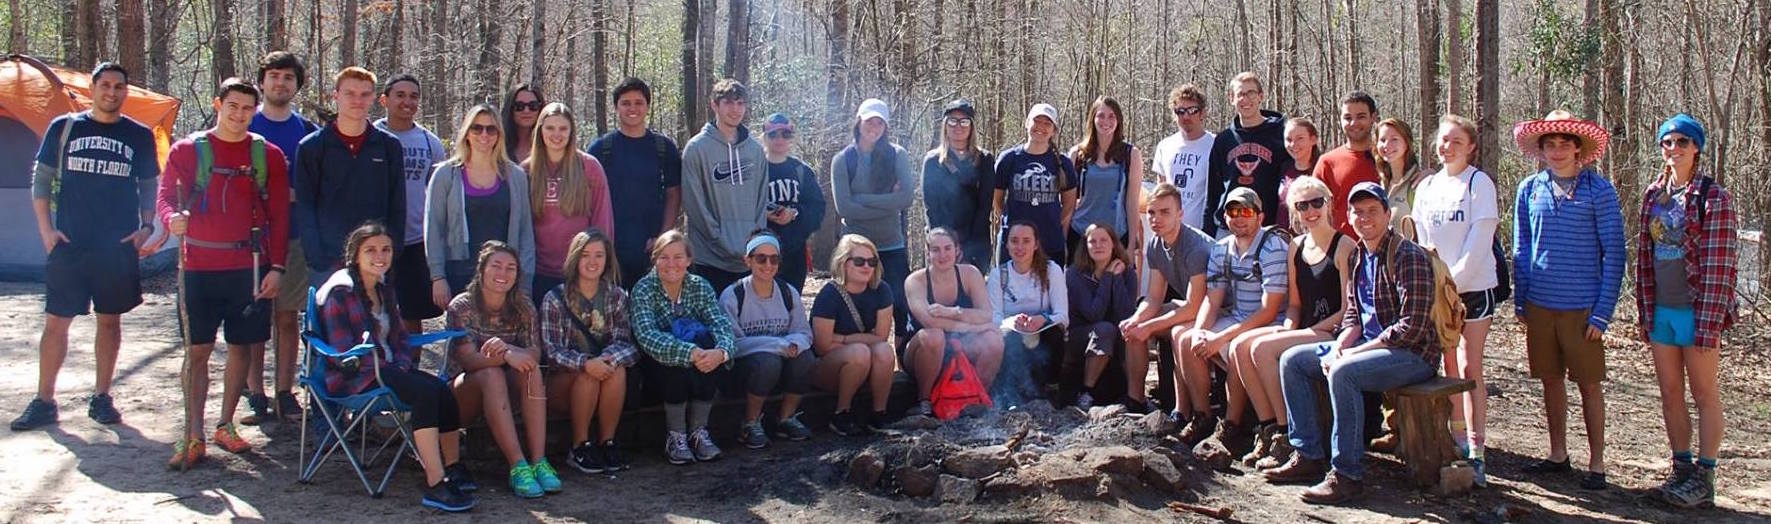 Student Coalition Providence Canyon Group Photo